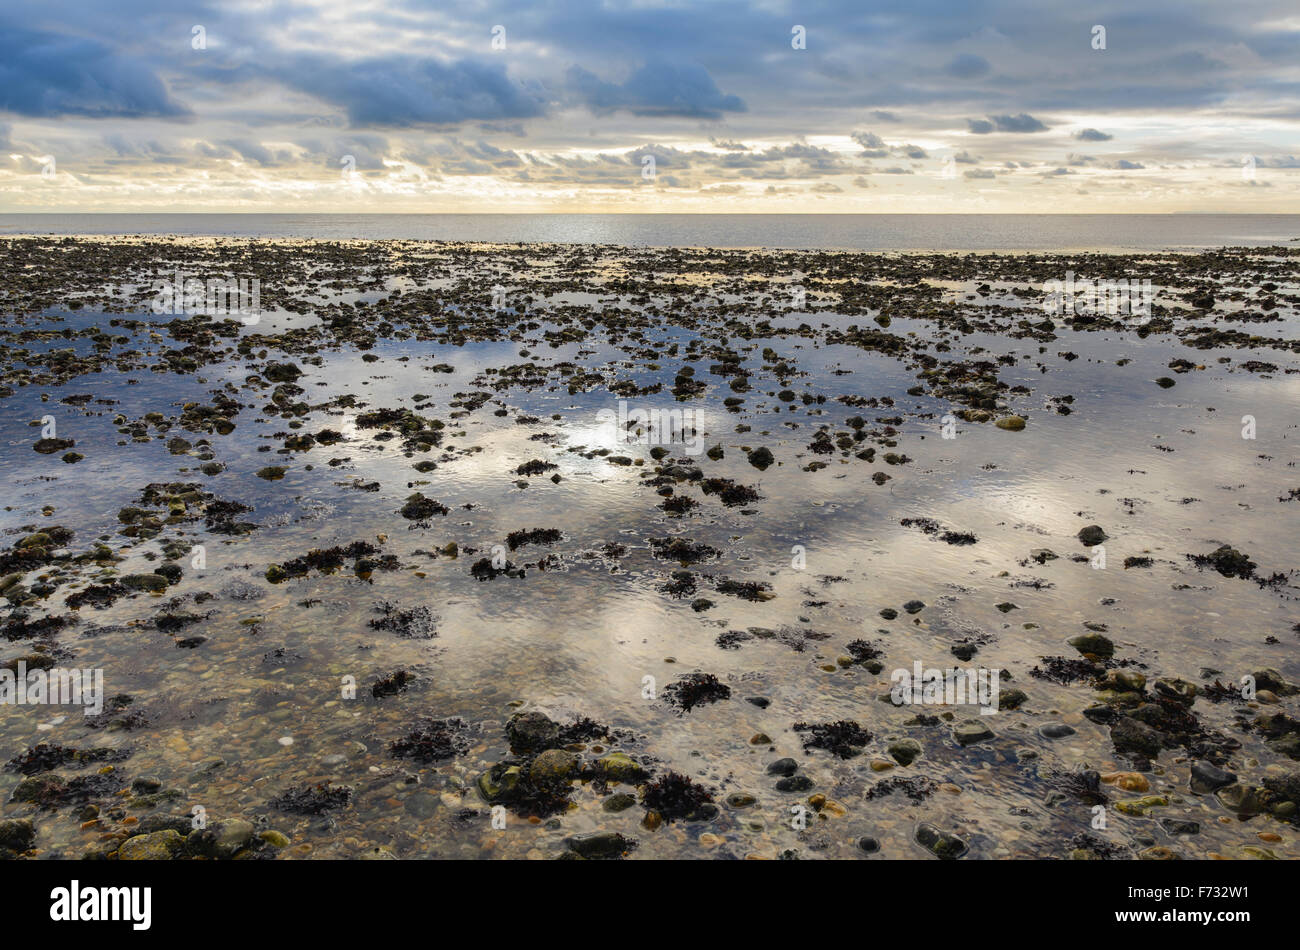 Reflections of the sky in the sea at low tide, on a deserted beach. - Stock Image